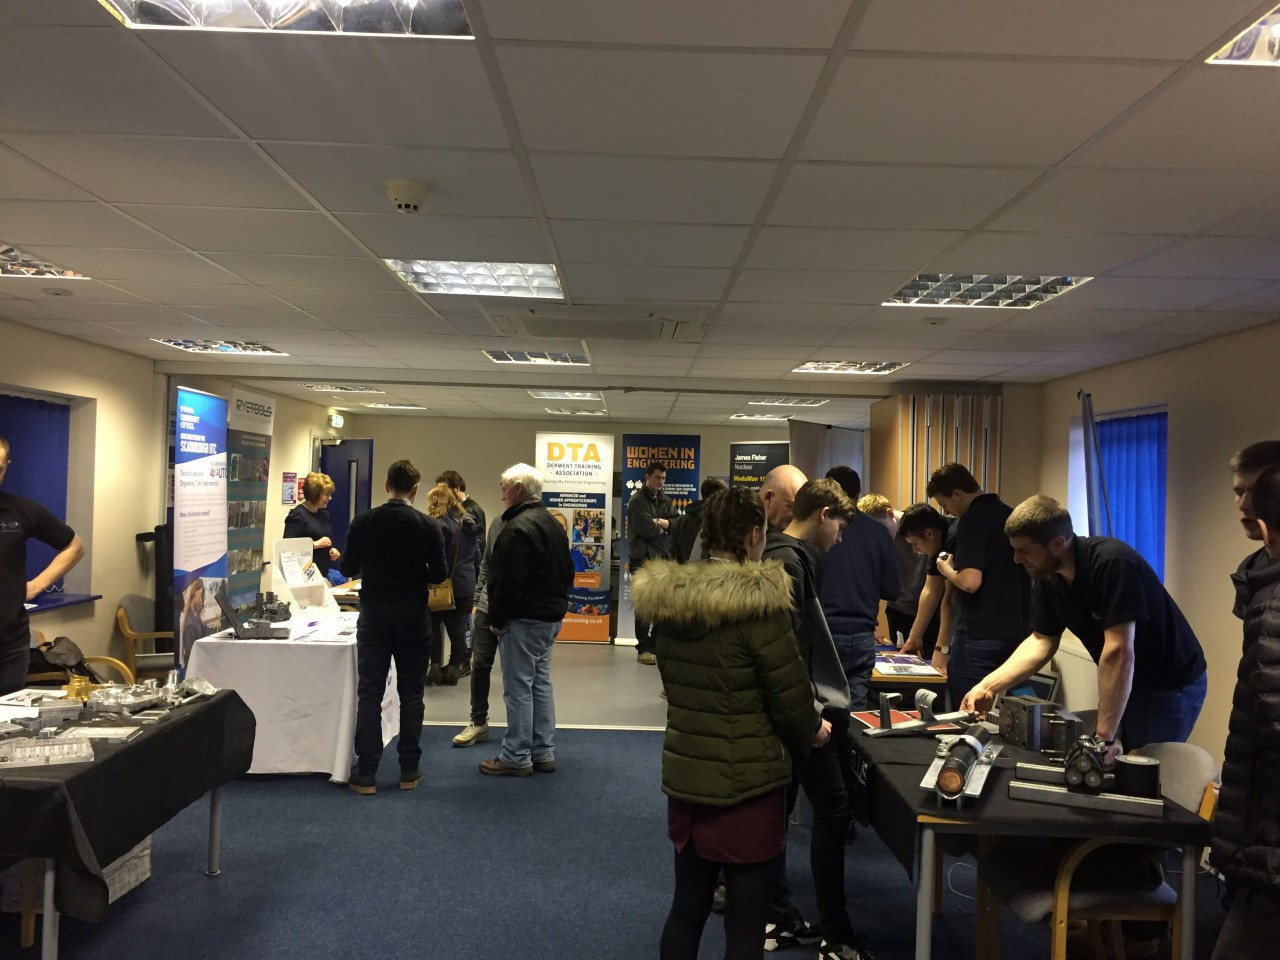 Shaping the Future for Engineering at Open Evening